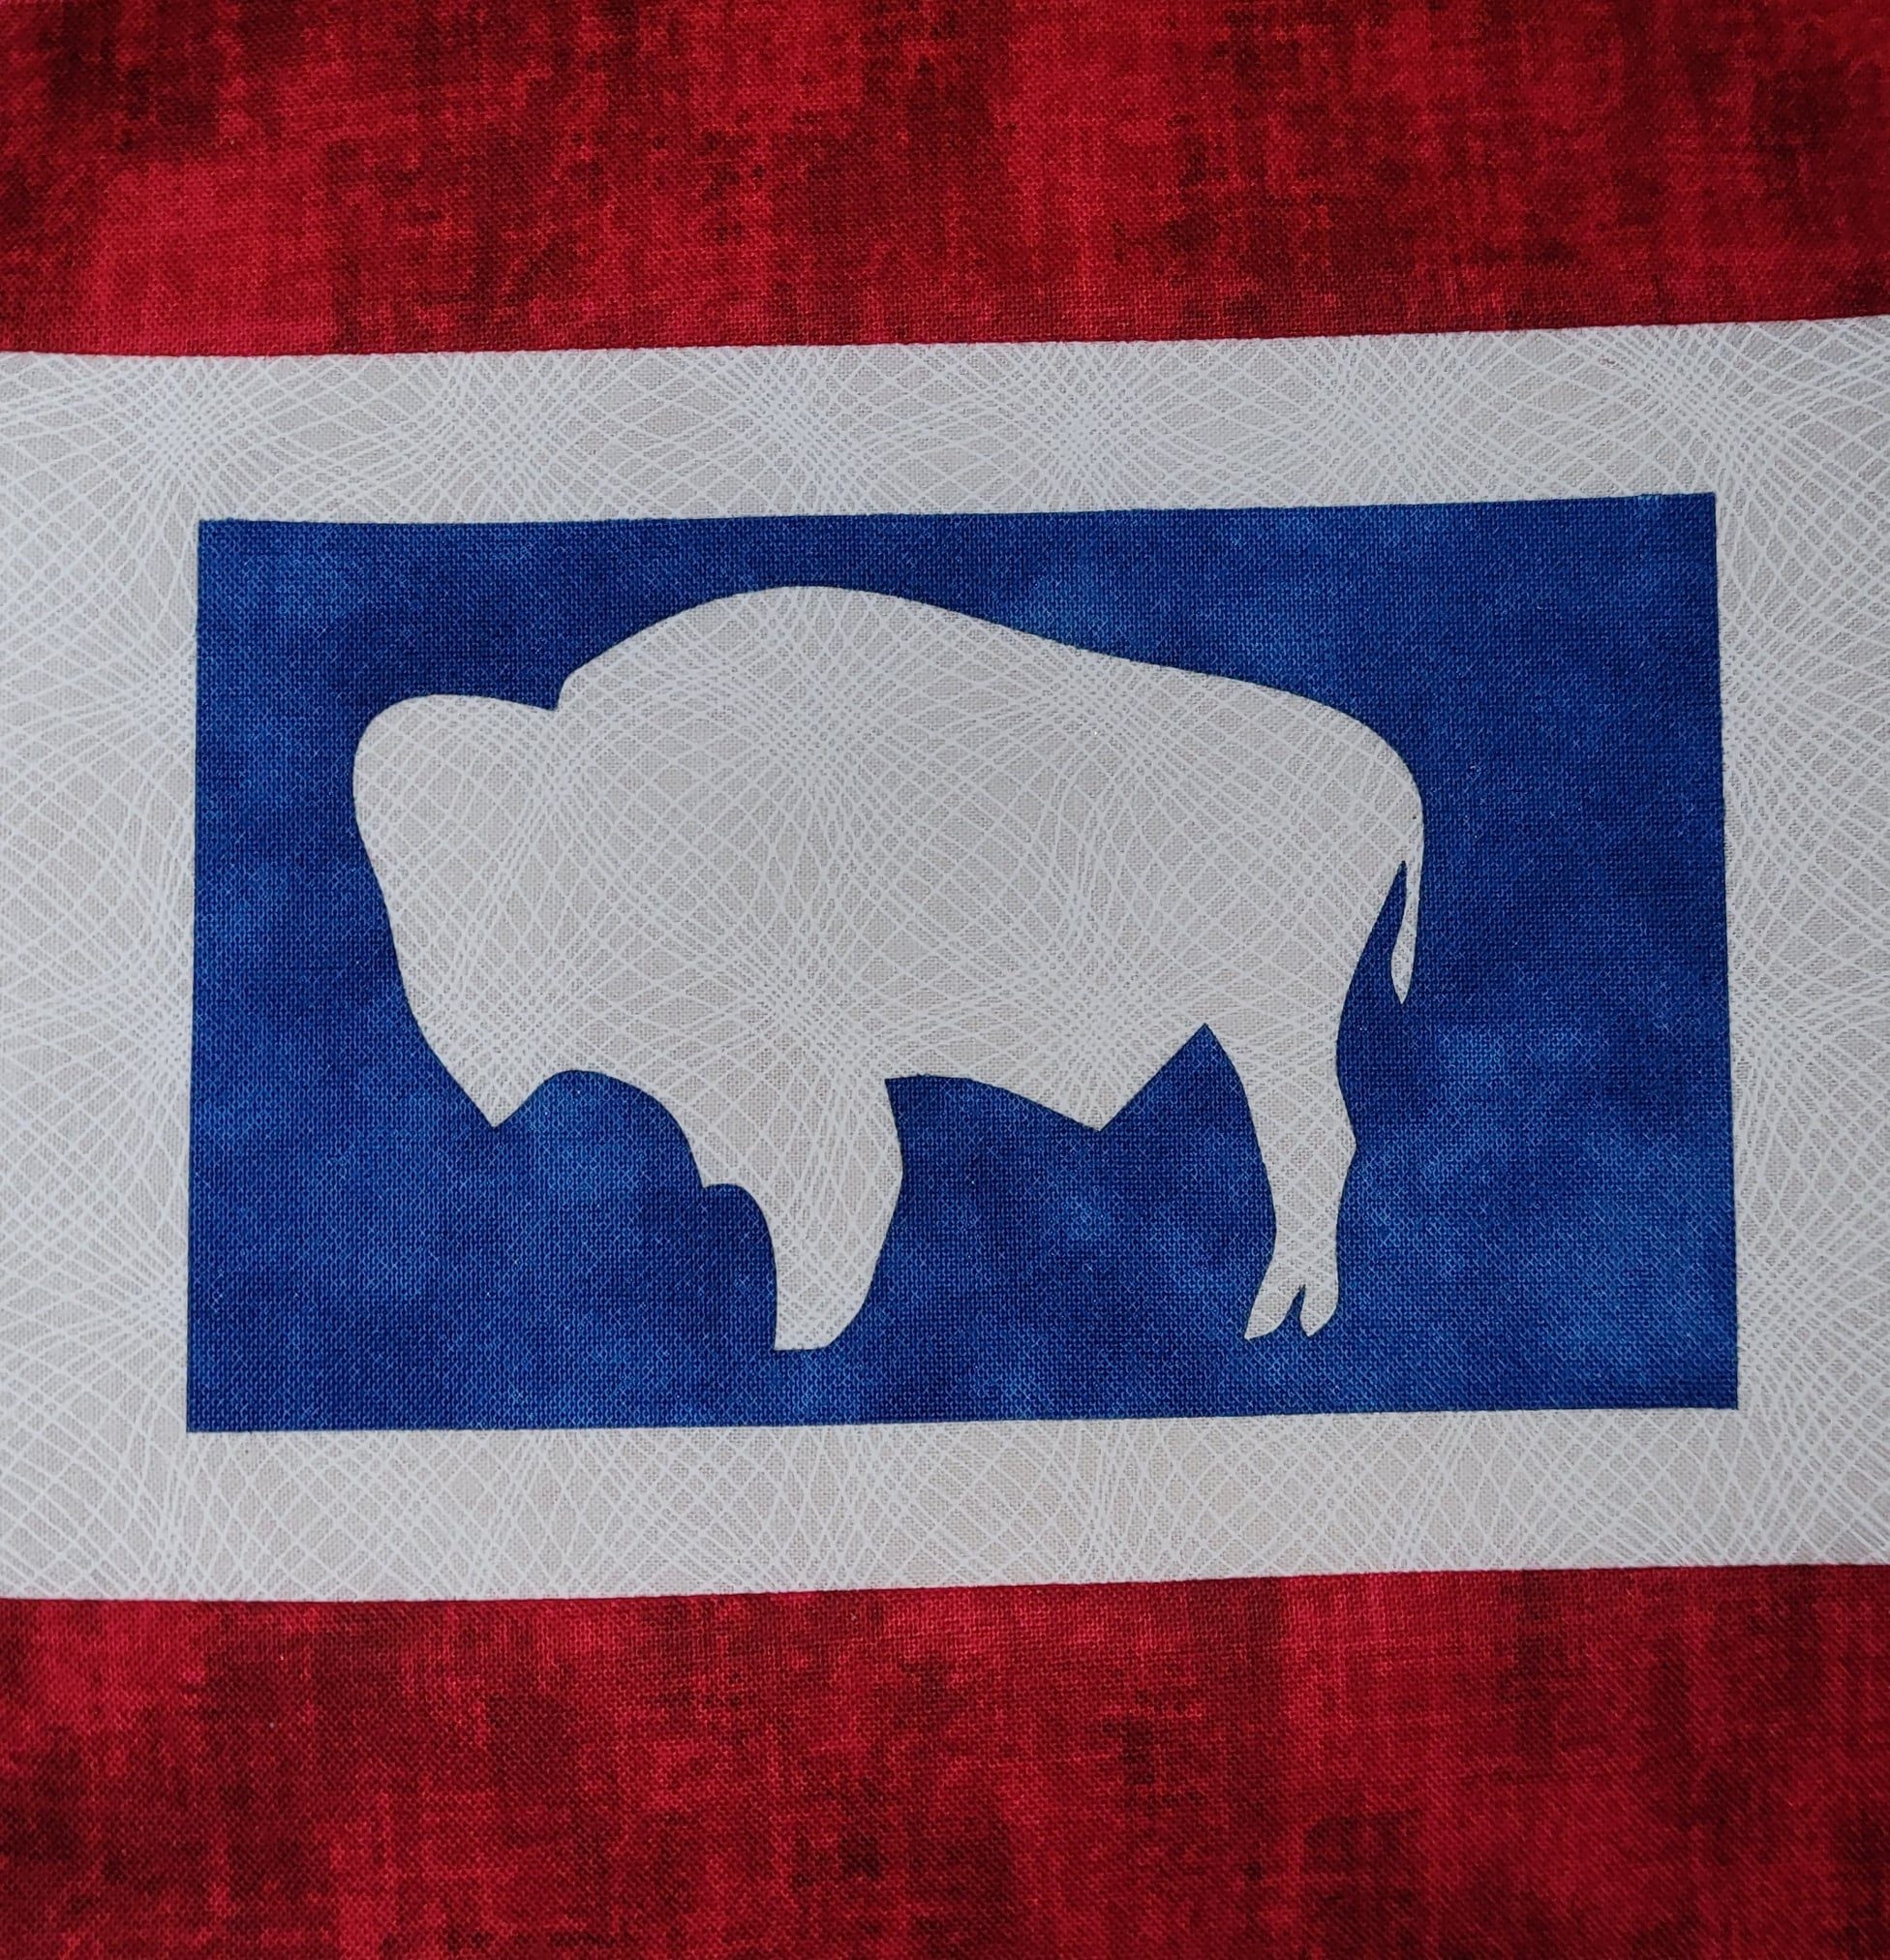 State of Wyoming Appliqué - FREE SHIPPING!!